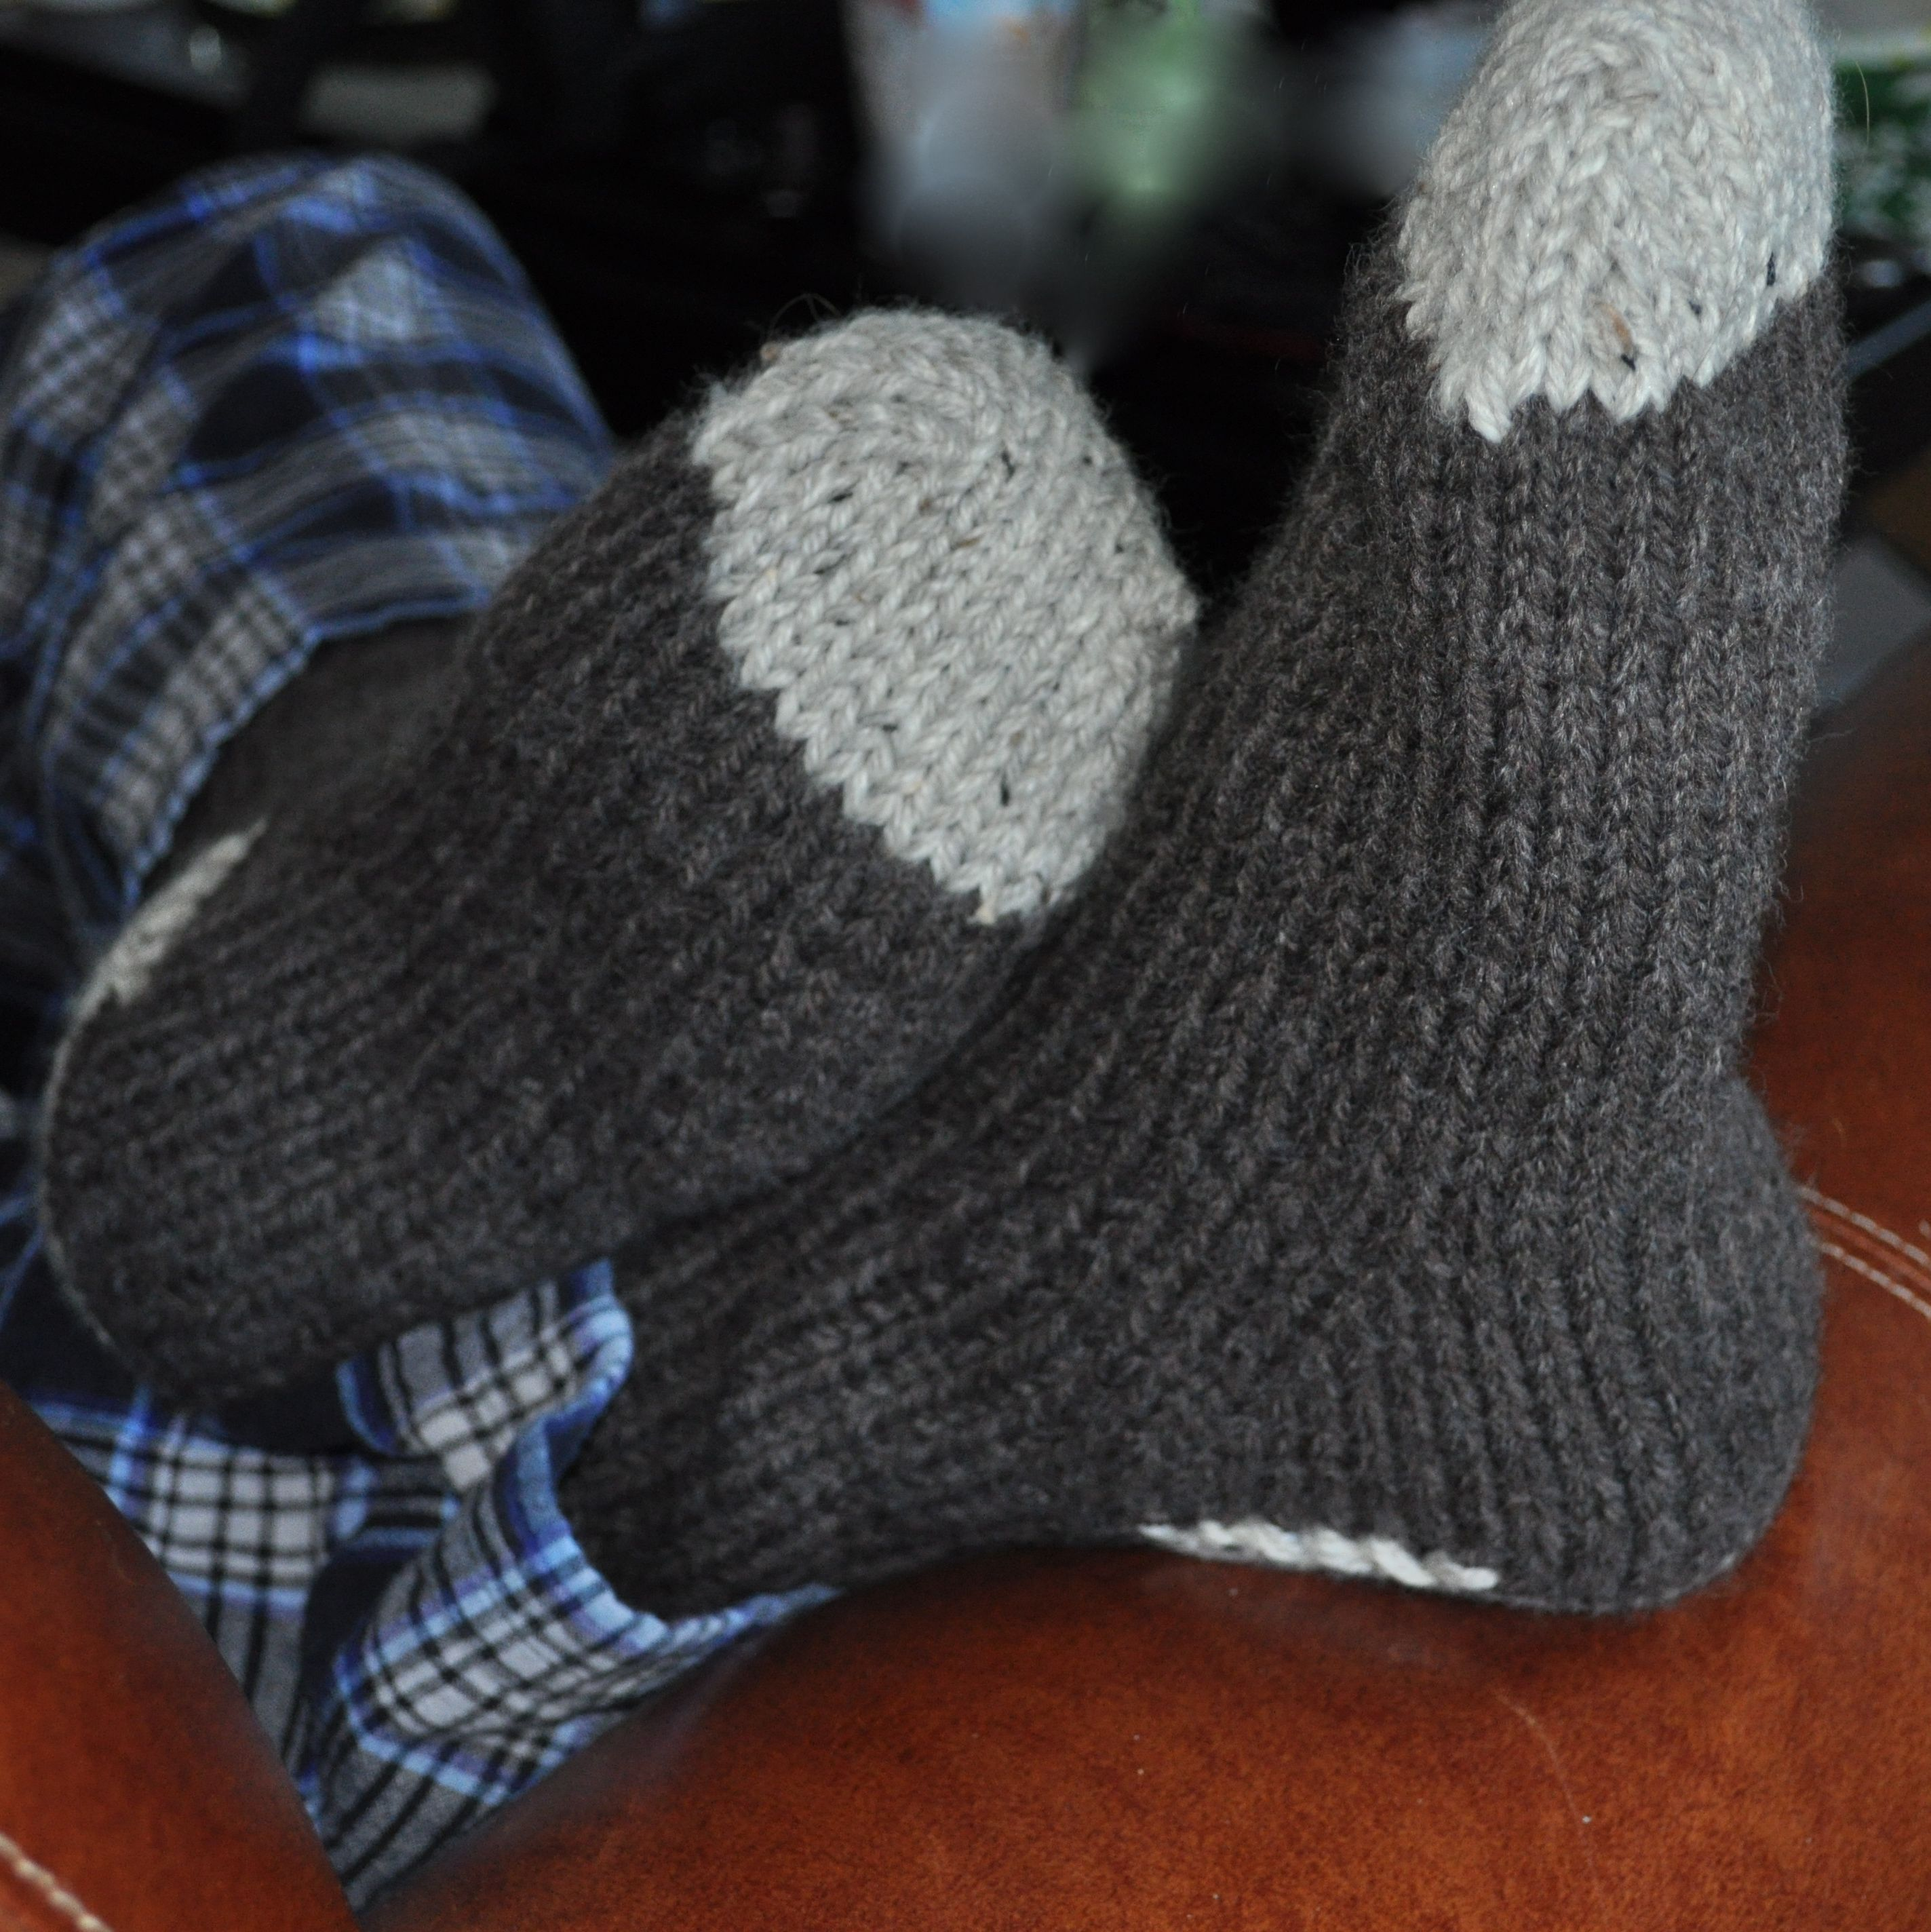 Last minute gift warm and cozy socks socks knitting patterns warm and cozy socks mens size worsted held doubled very warm house socks bankloansurffo Image collections